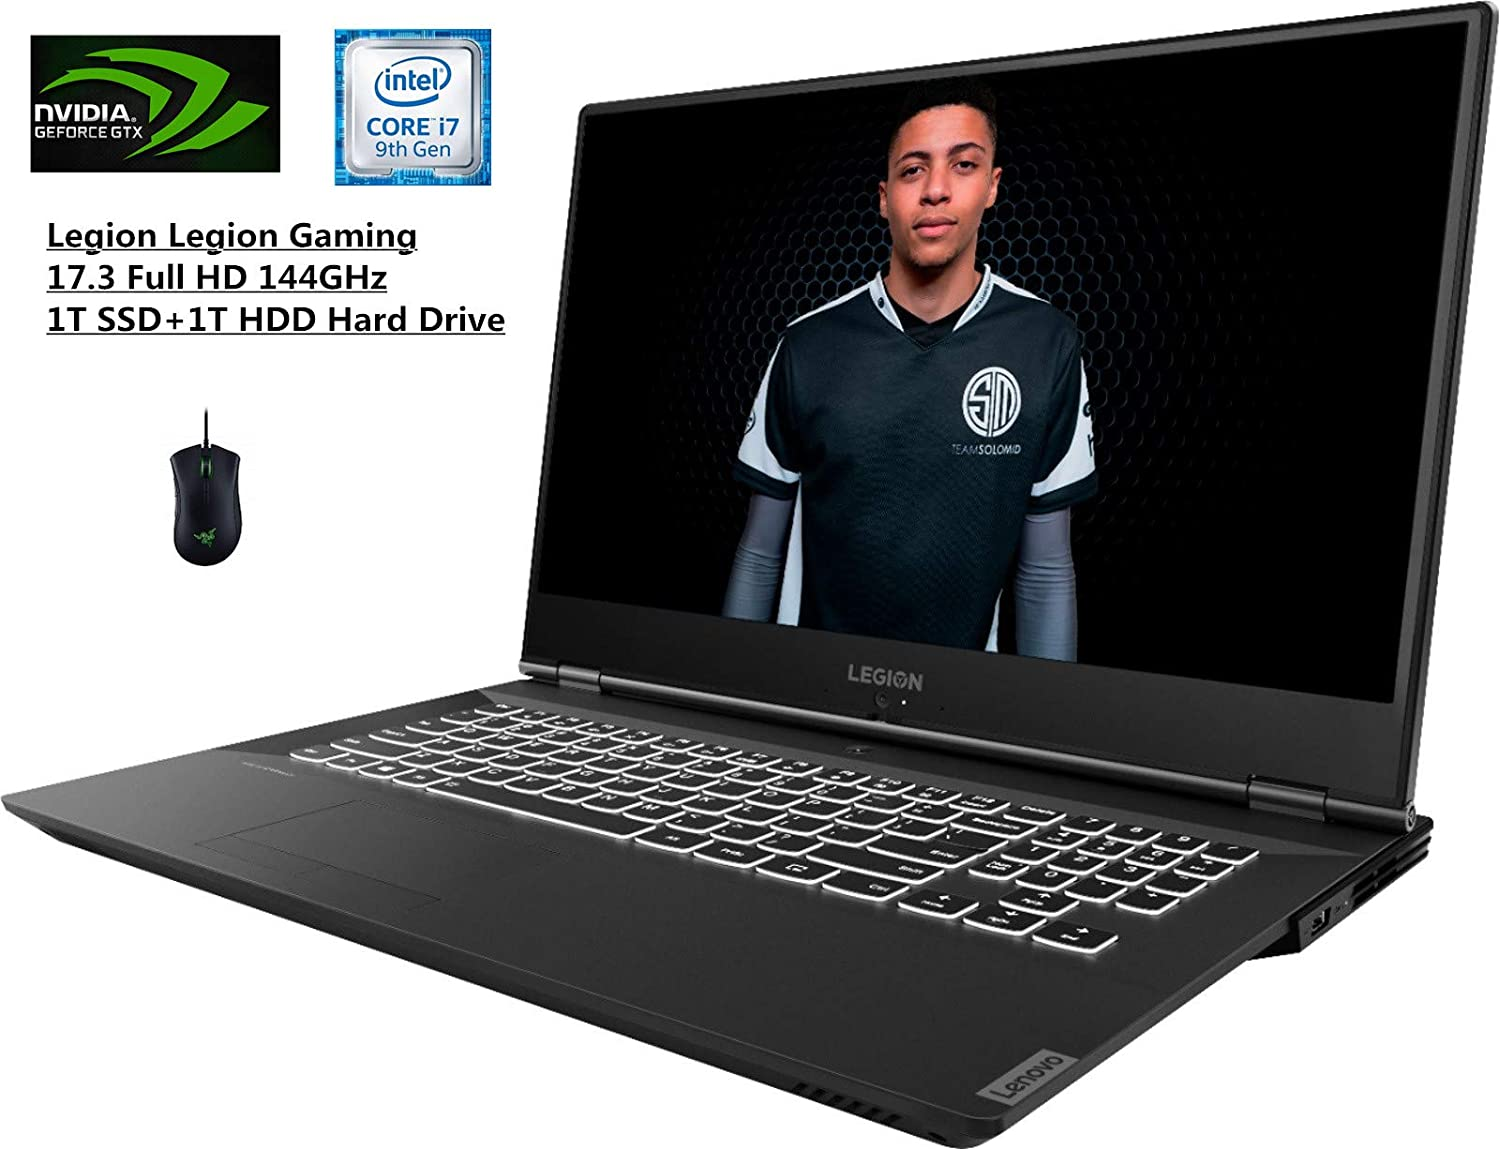 Lenovo Legion Y540 17.3-inch FHD Gaming Laptop Bundle RGB Gaming Mouse | Intel Hexa-Core I7-9750H | Nvidia Geforce GTX 1660Ti | 16GB DDR4 RAM | 1TB SSD+ 1TB HDD | Backlit Keyboard | HDMI | Windows 10